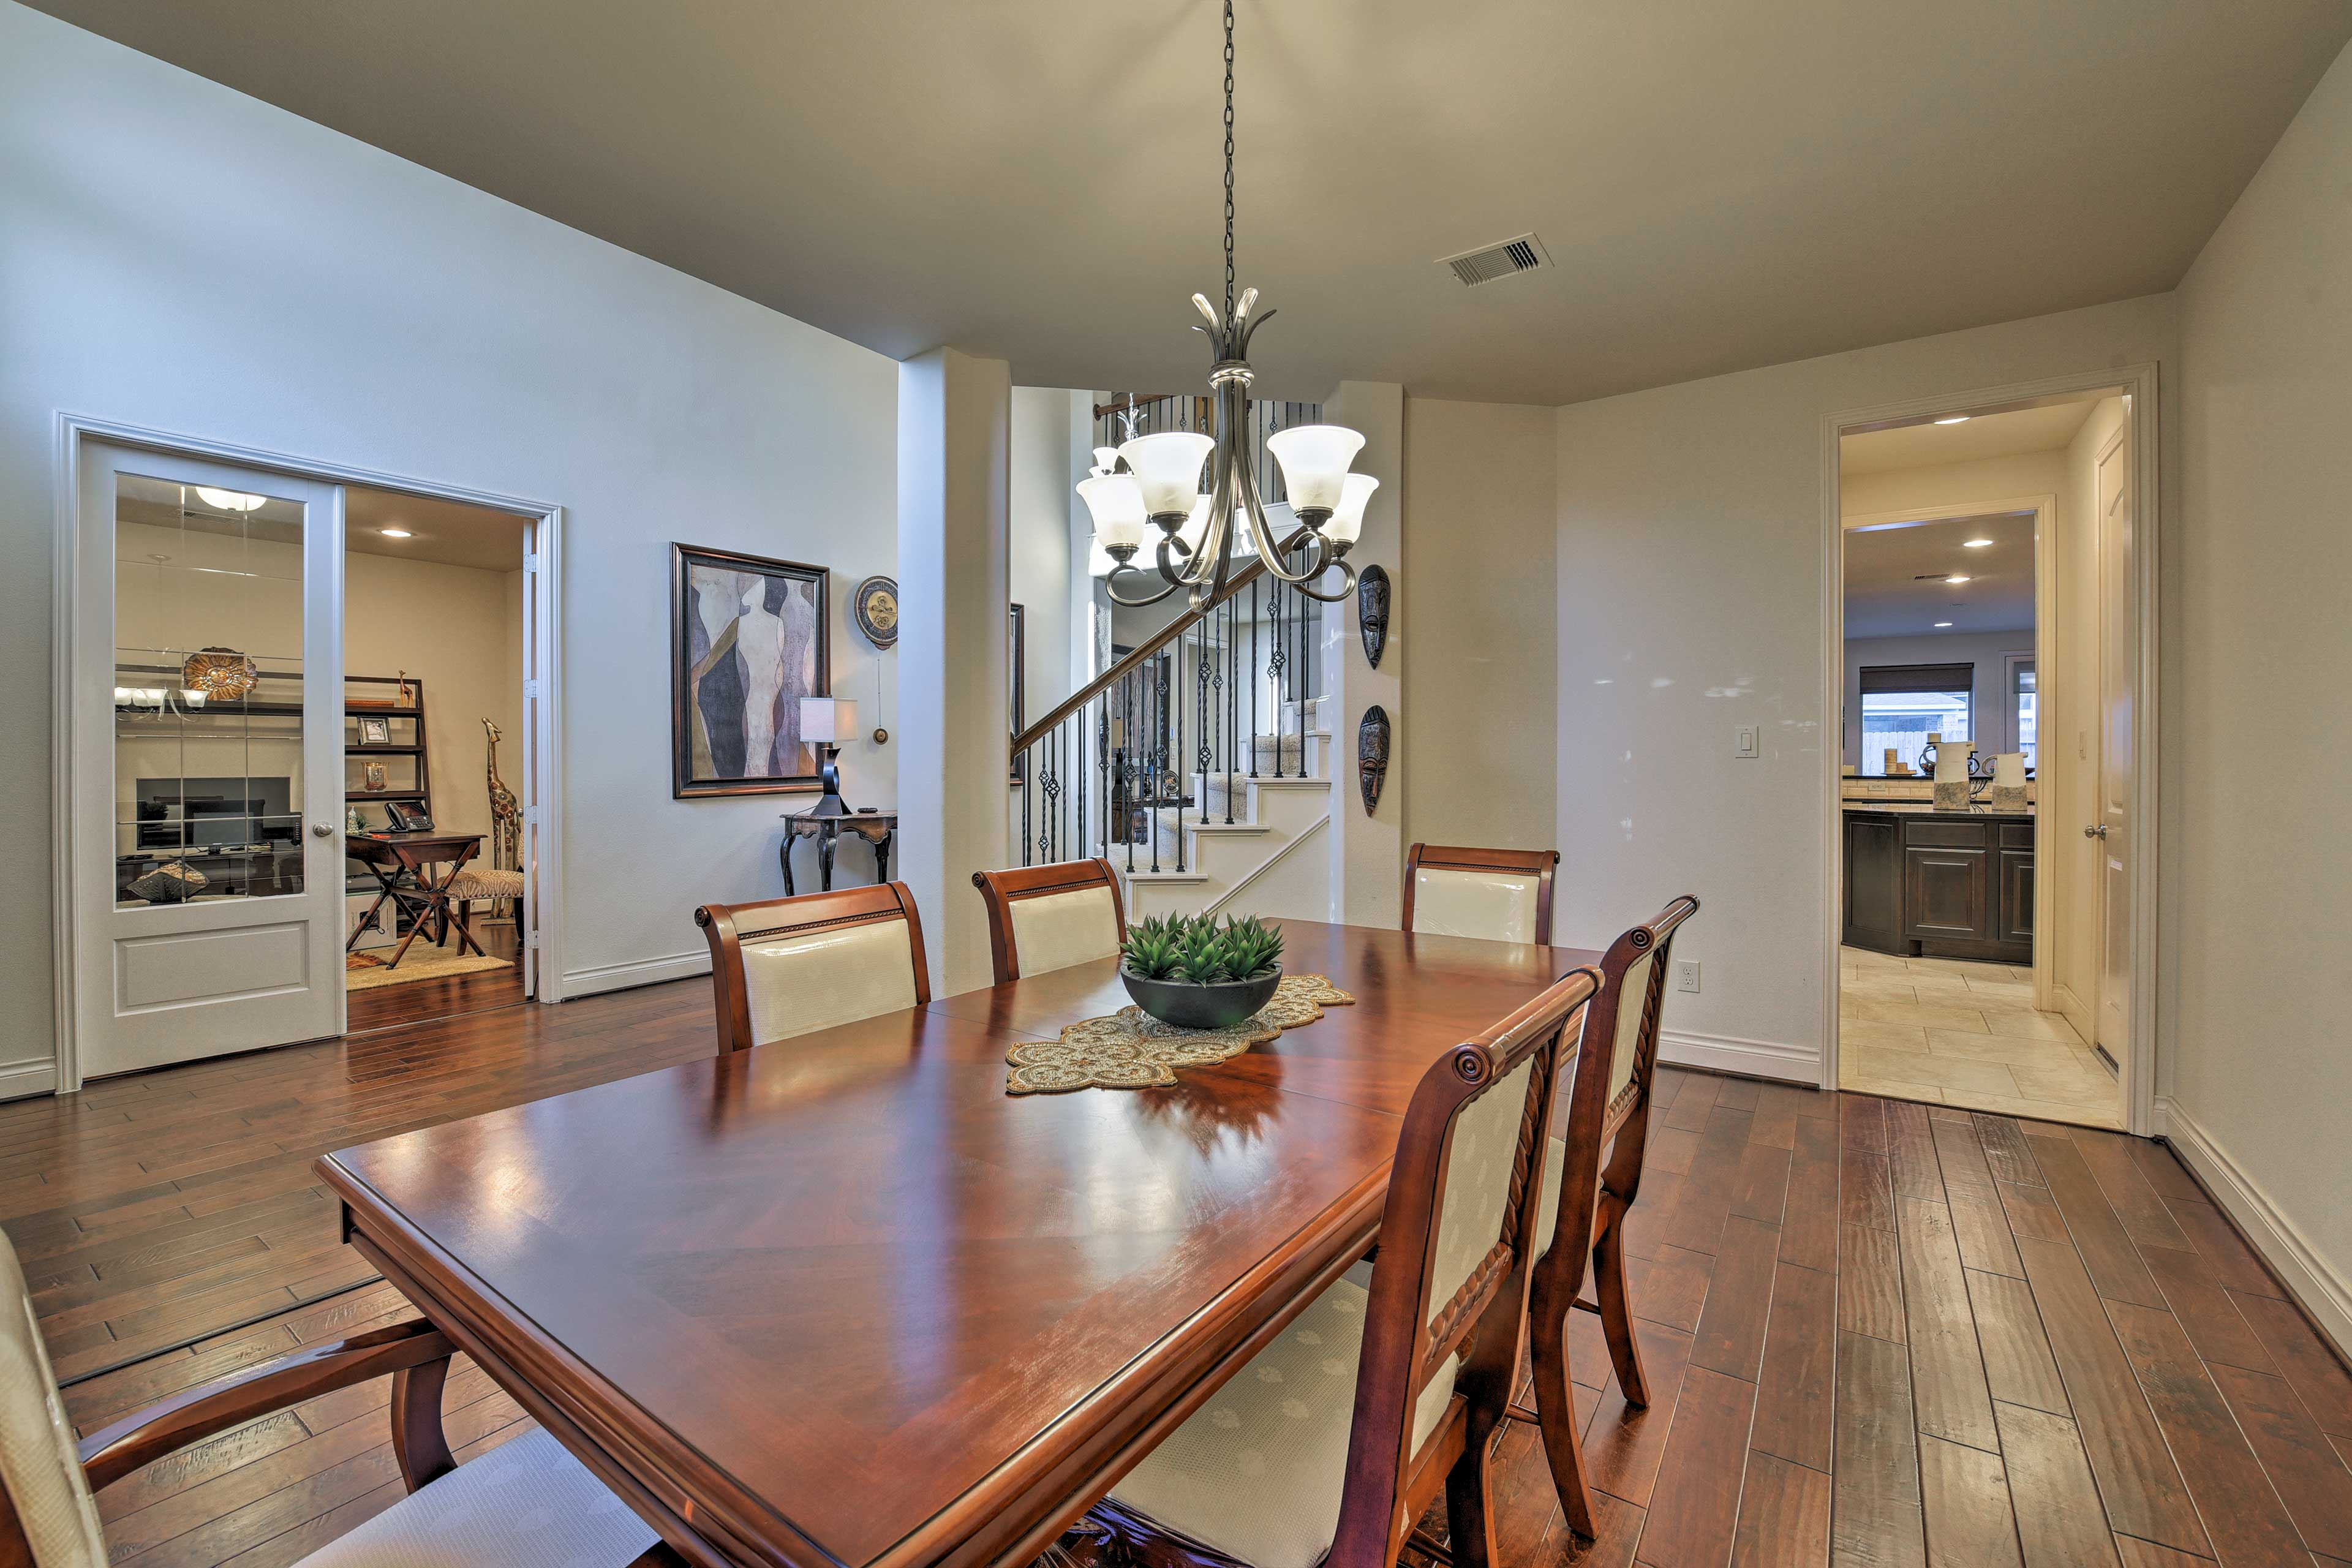 The formal dining area features an elegant 6-person table.